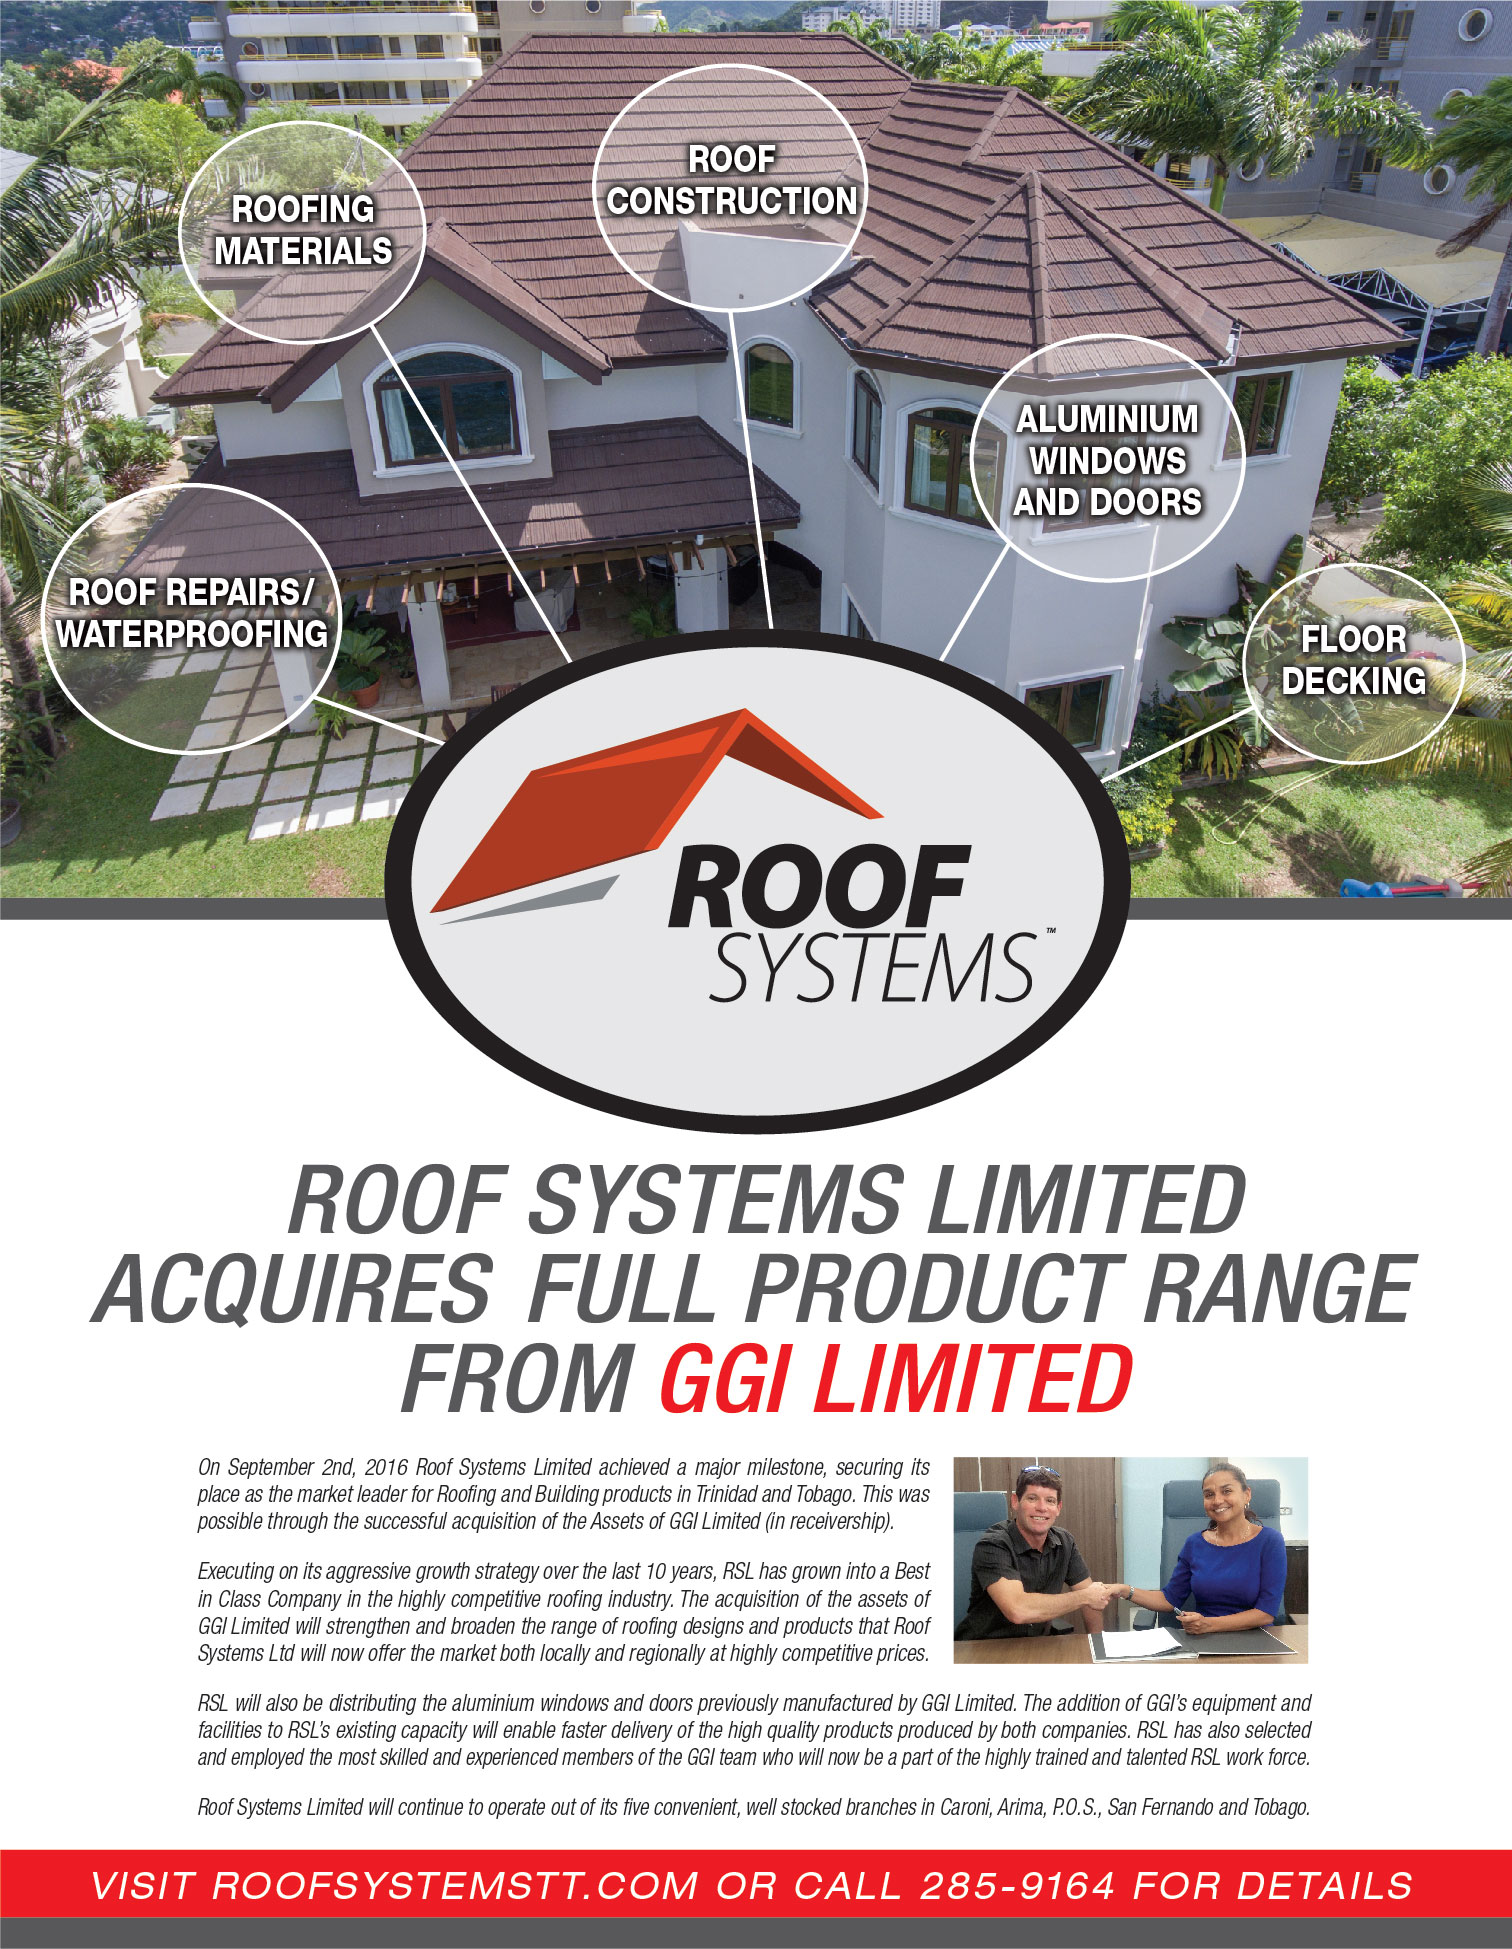 Roof Systems Acquires Full Ggi Product Range Roof Systems